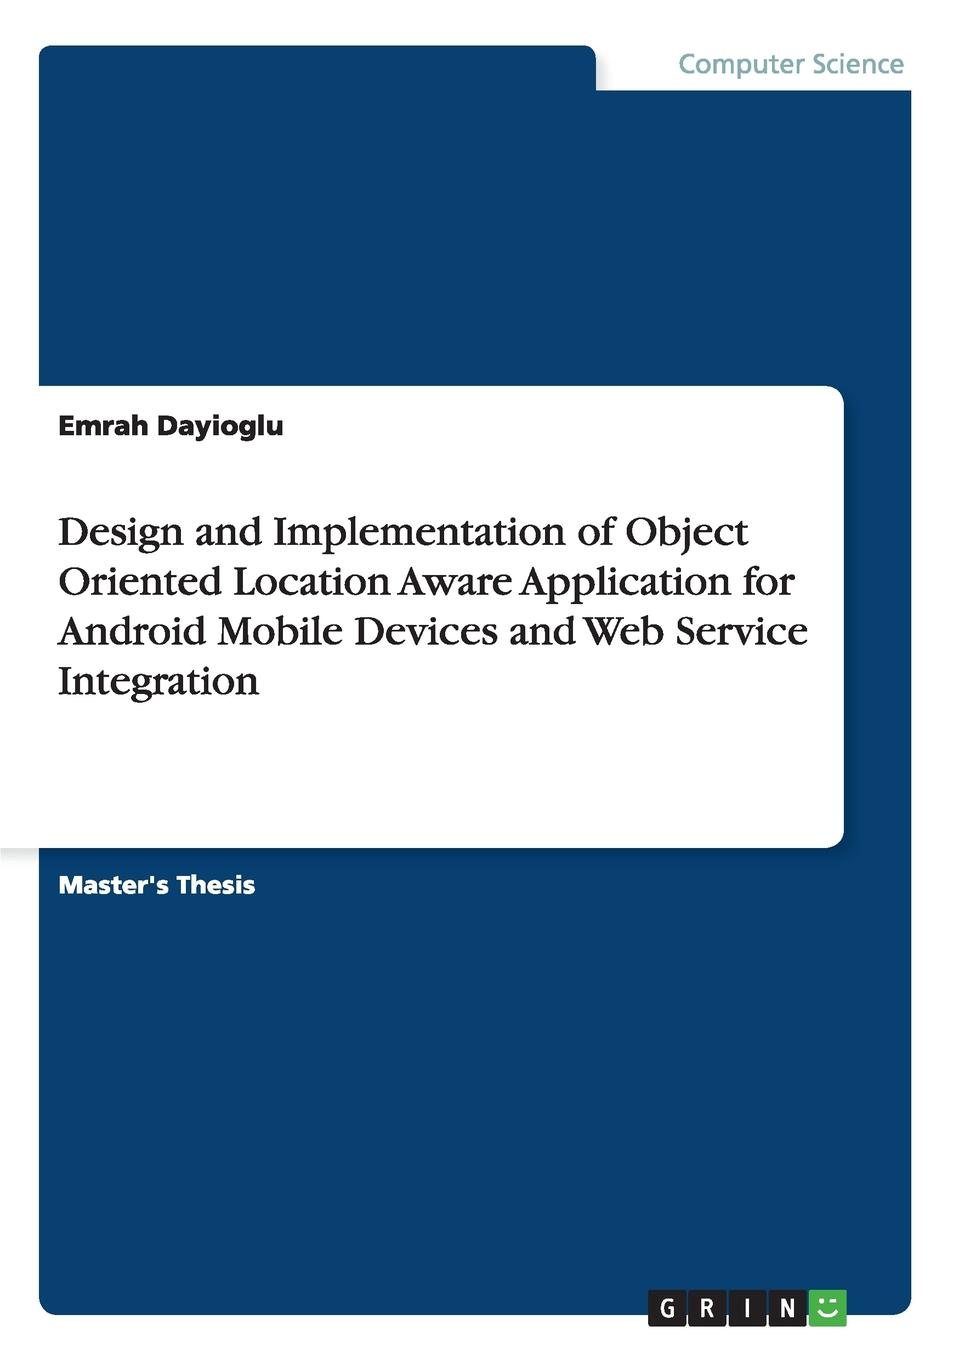 лучшая цена Emrah Dayioglu Design and Implementation of Object Oriented Location Aware Application for Android Mobile Devices and Web Service Integration